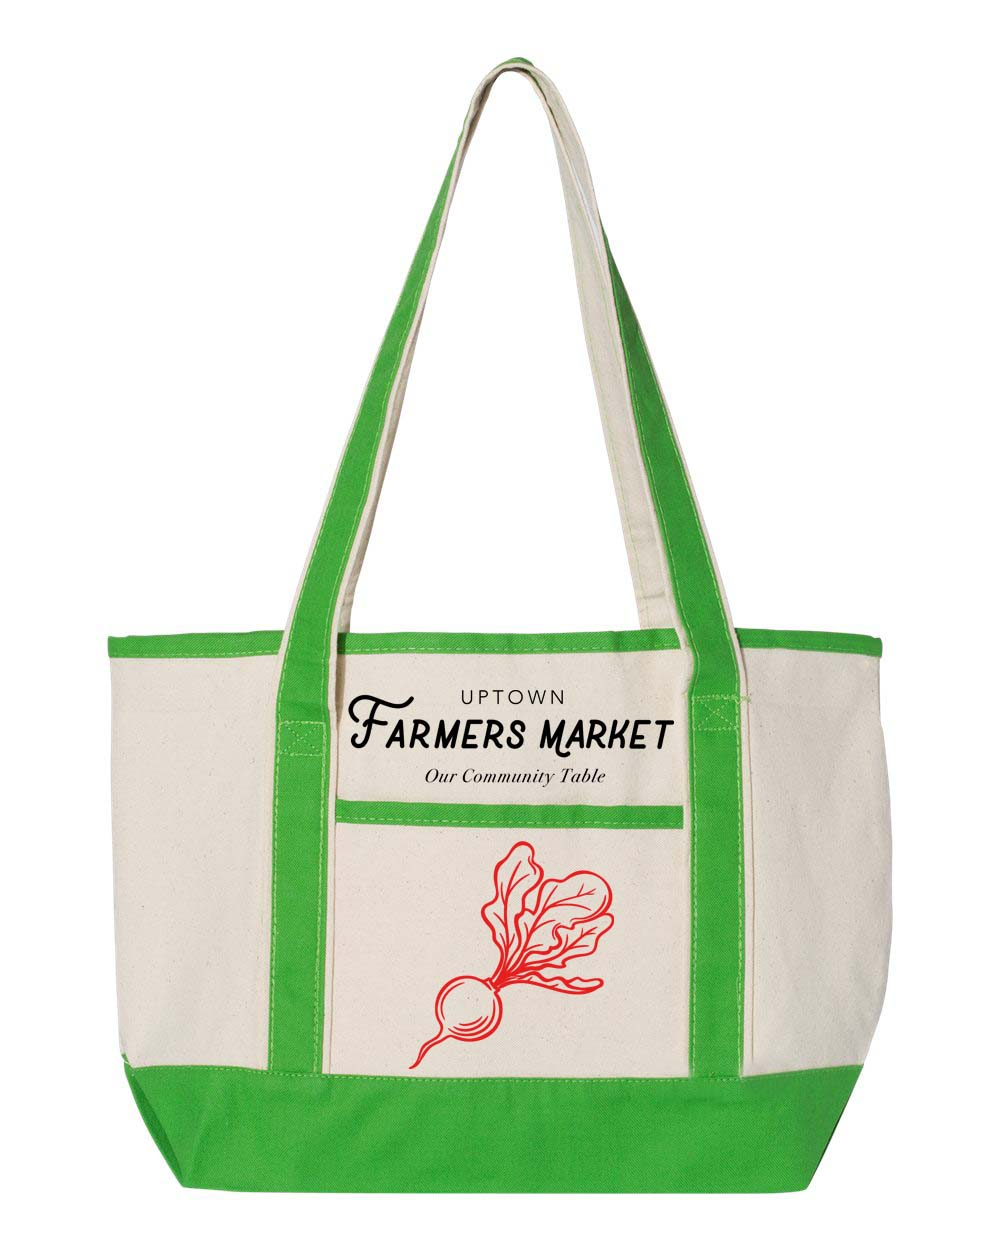 Uptown Farmers market - Tote Bag - 12oz Canvas Small Canvas Deluxe Tote